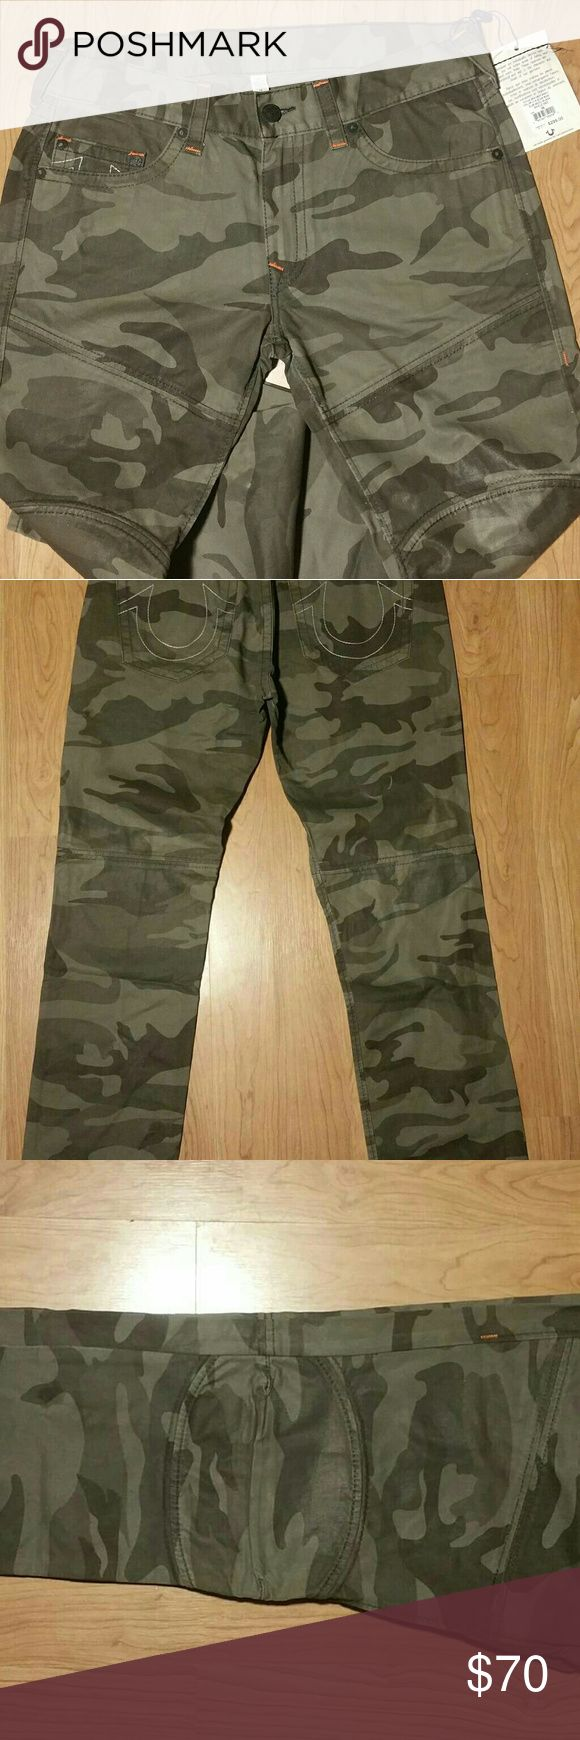 NEW! $299 TRUE RELIGION MENS CAMO PANTS SZ 34 True religion men's slim moto single end slow ride CAMO pants NEW with tags MRSP-$299  Please note: I will not accept low ball offers! I am a seller on other platforms as well I know the resale value for these NWT and I am offering them even lower than the resale value. These are priced to sell, not negotiate. Thank you for your interest. These are also available at qpon.flipper on the eBay platform. True Religion Pants Chinos & Khakis